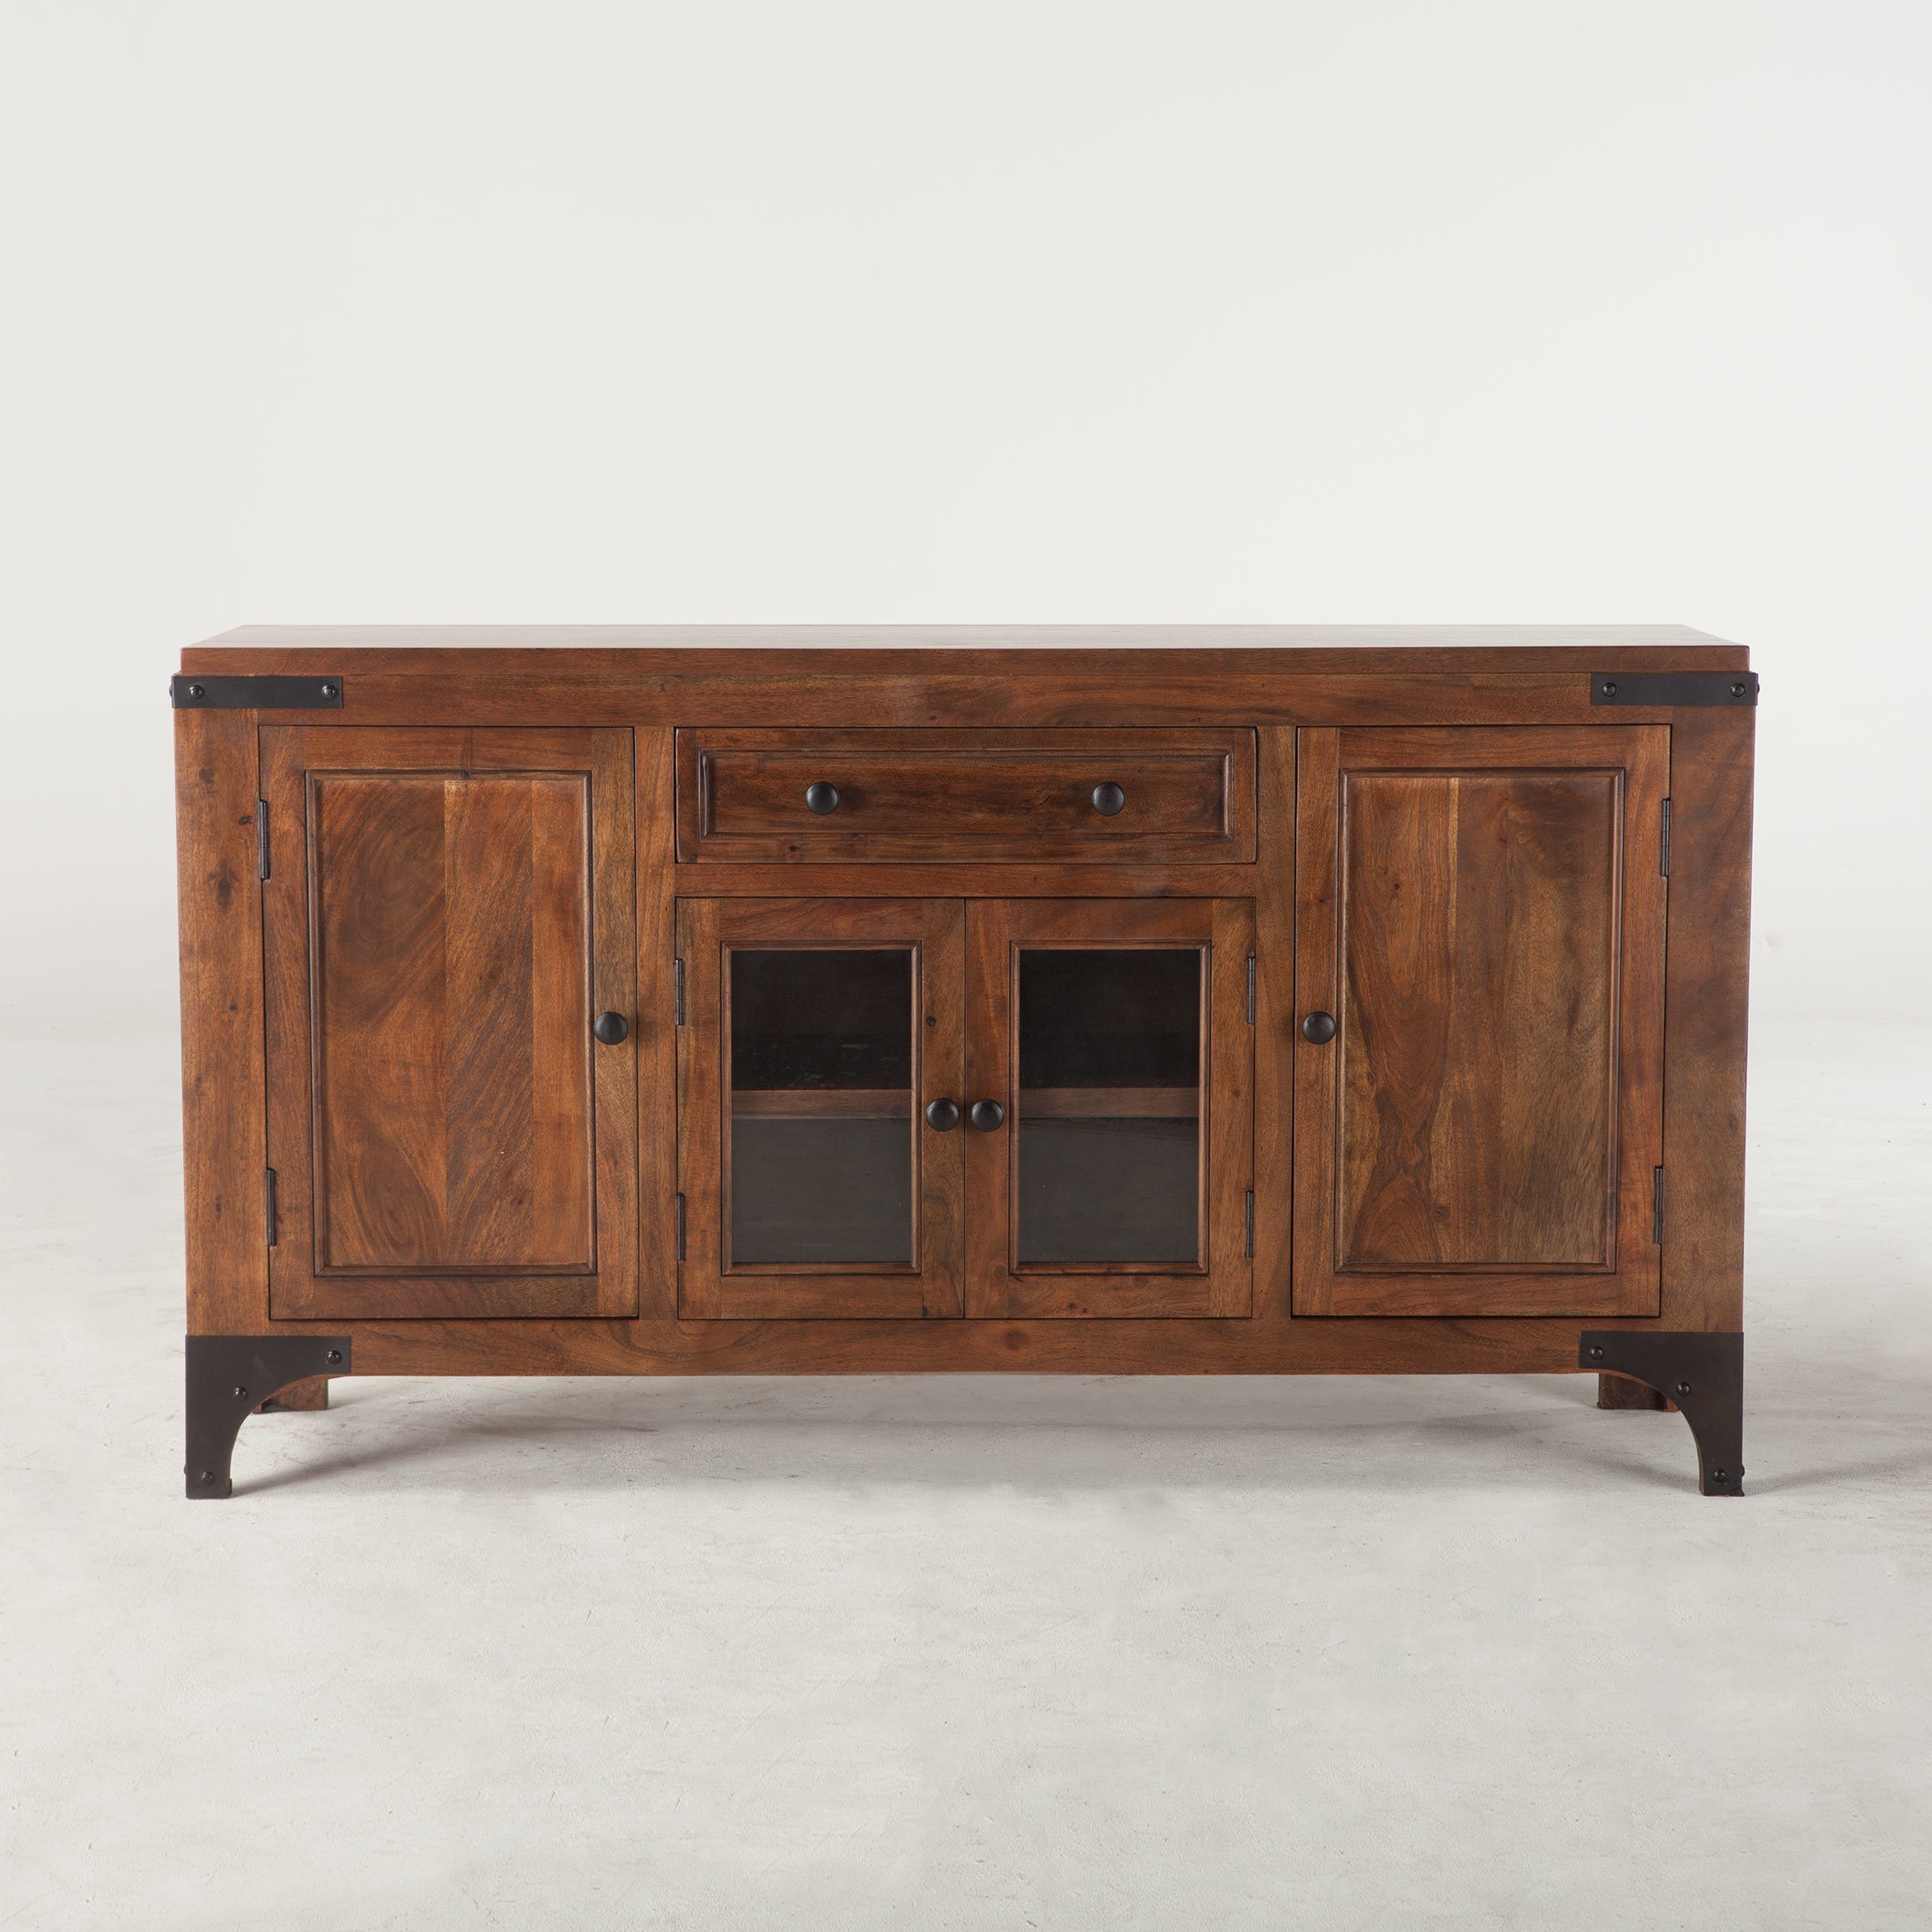 Most Recent Arminta Wood Sideboards In Tabiauea Acacia Sideboard (View 12 of 20)